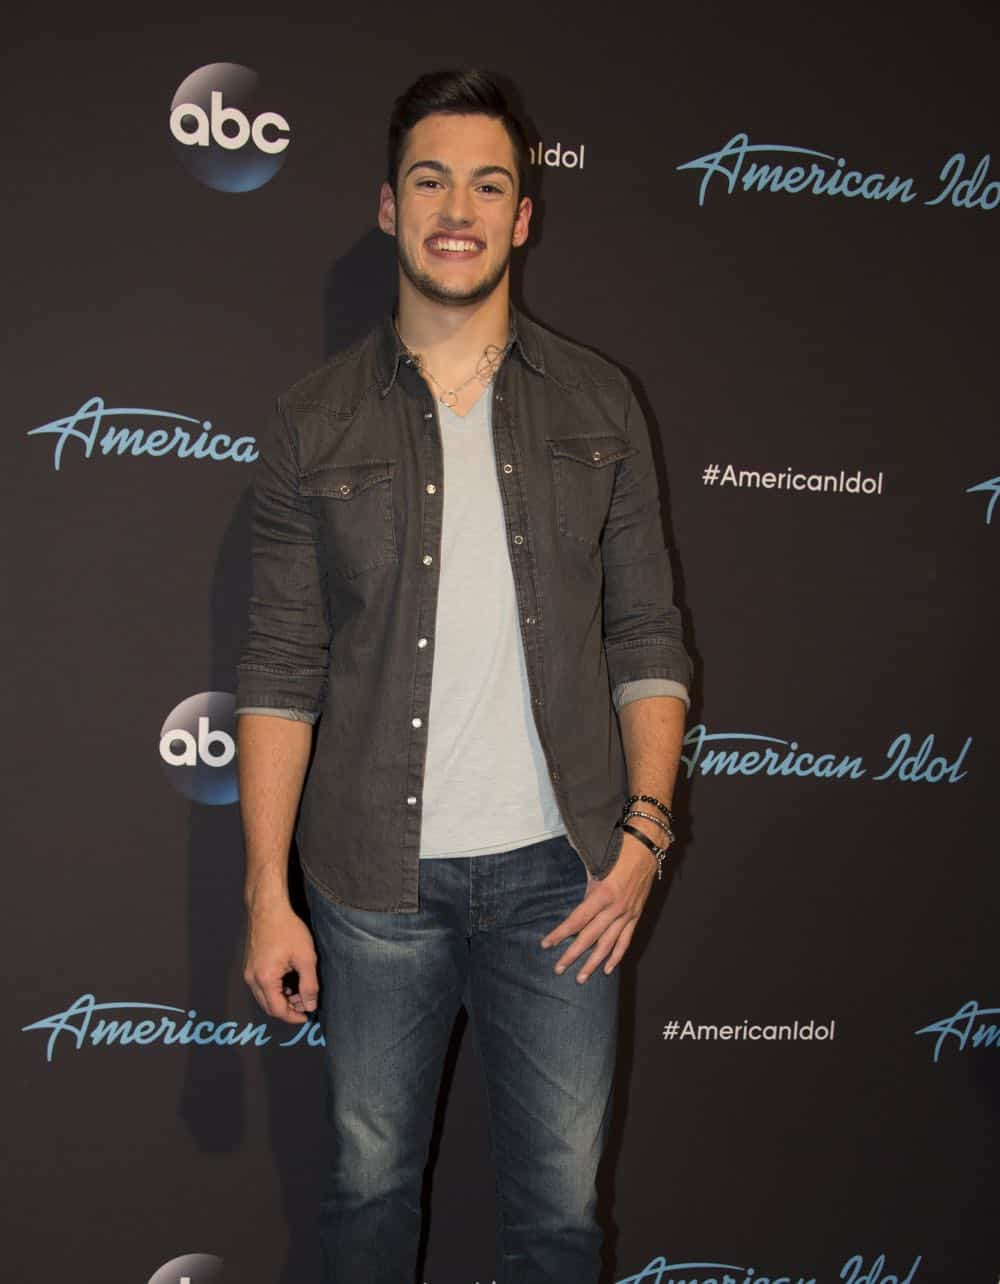 "AMERICAN IDOL - ""114 (Top 10 Reveal)"" - America's votes are in and live shows begin, as the top 14 contestants perform and the top 10 finalists are revealed, as the search for America's next superstar continues on its new home on America's network, The ABC Television Network, MONDAY, APRIL 23 (8:00-10:00 p.m. EDT). (ABC/Eric McCandless) GARRETT JACOBS"